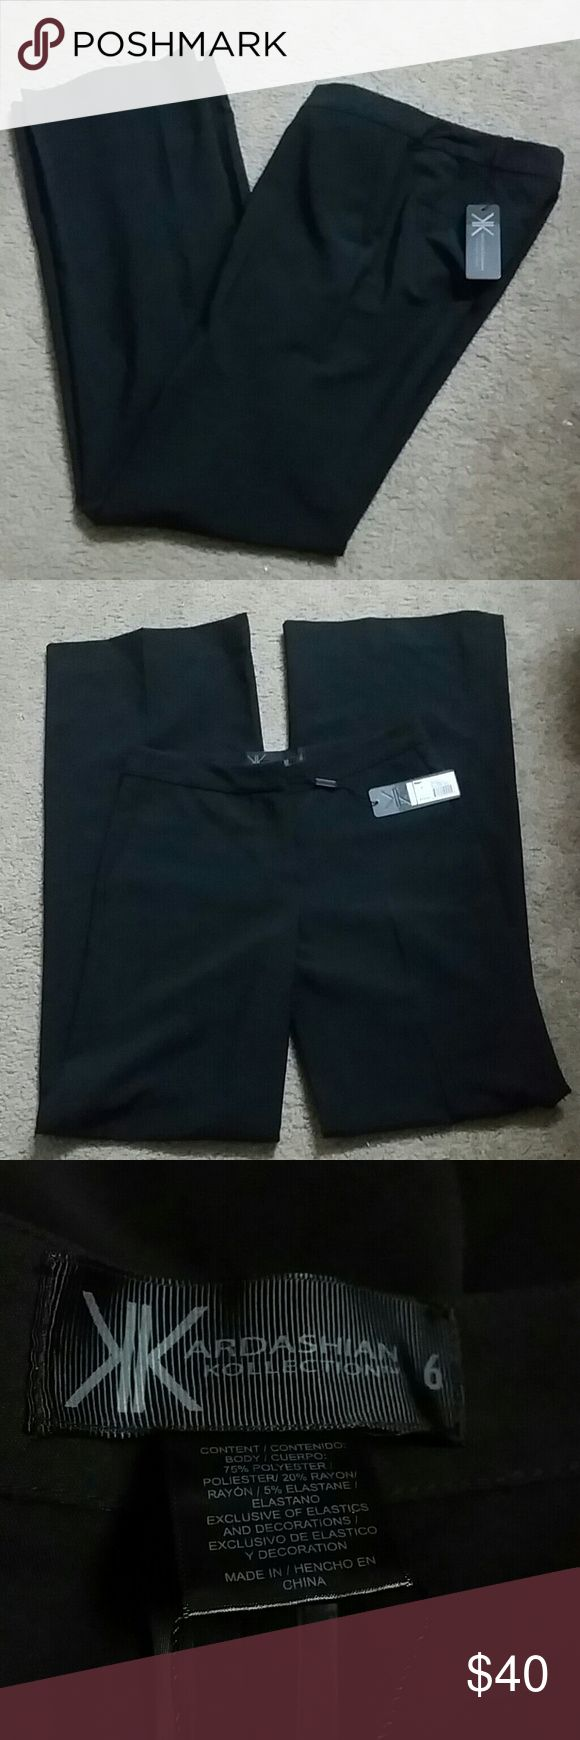 NWT Kardashian kollection bell pant NWT Kardashian kollection bell pant. These are beautiful career pants to dress up for work. Offers accepted. Kardashian Kollection Pants Boot Cut & Flare